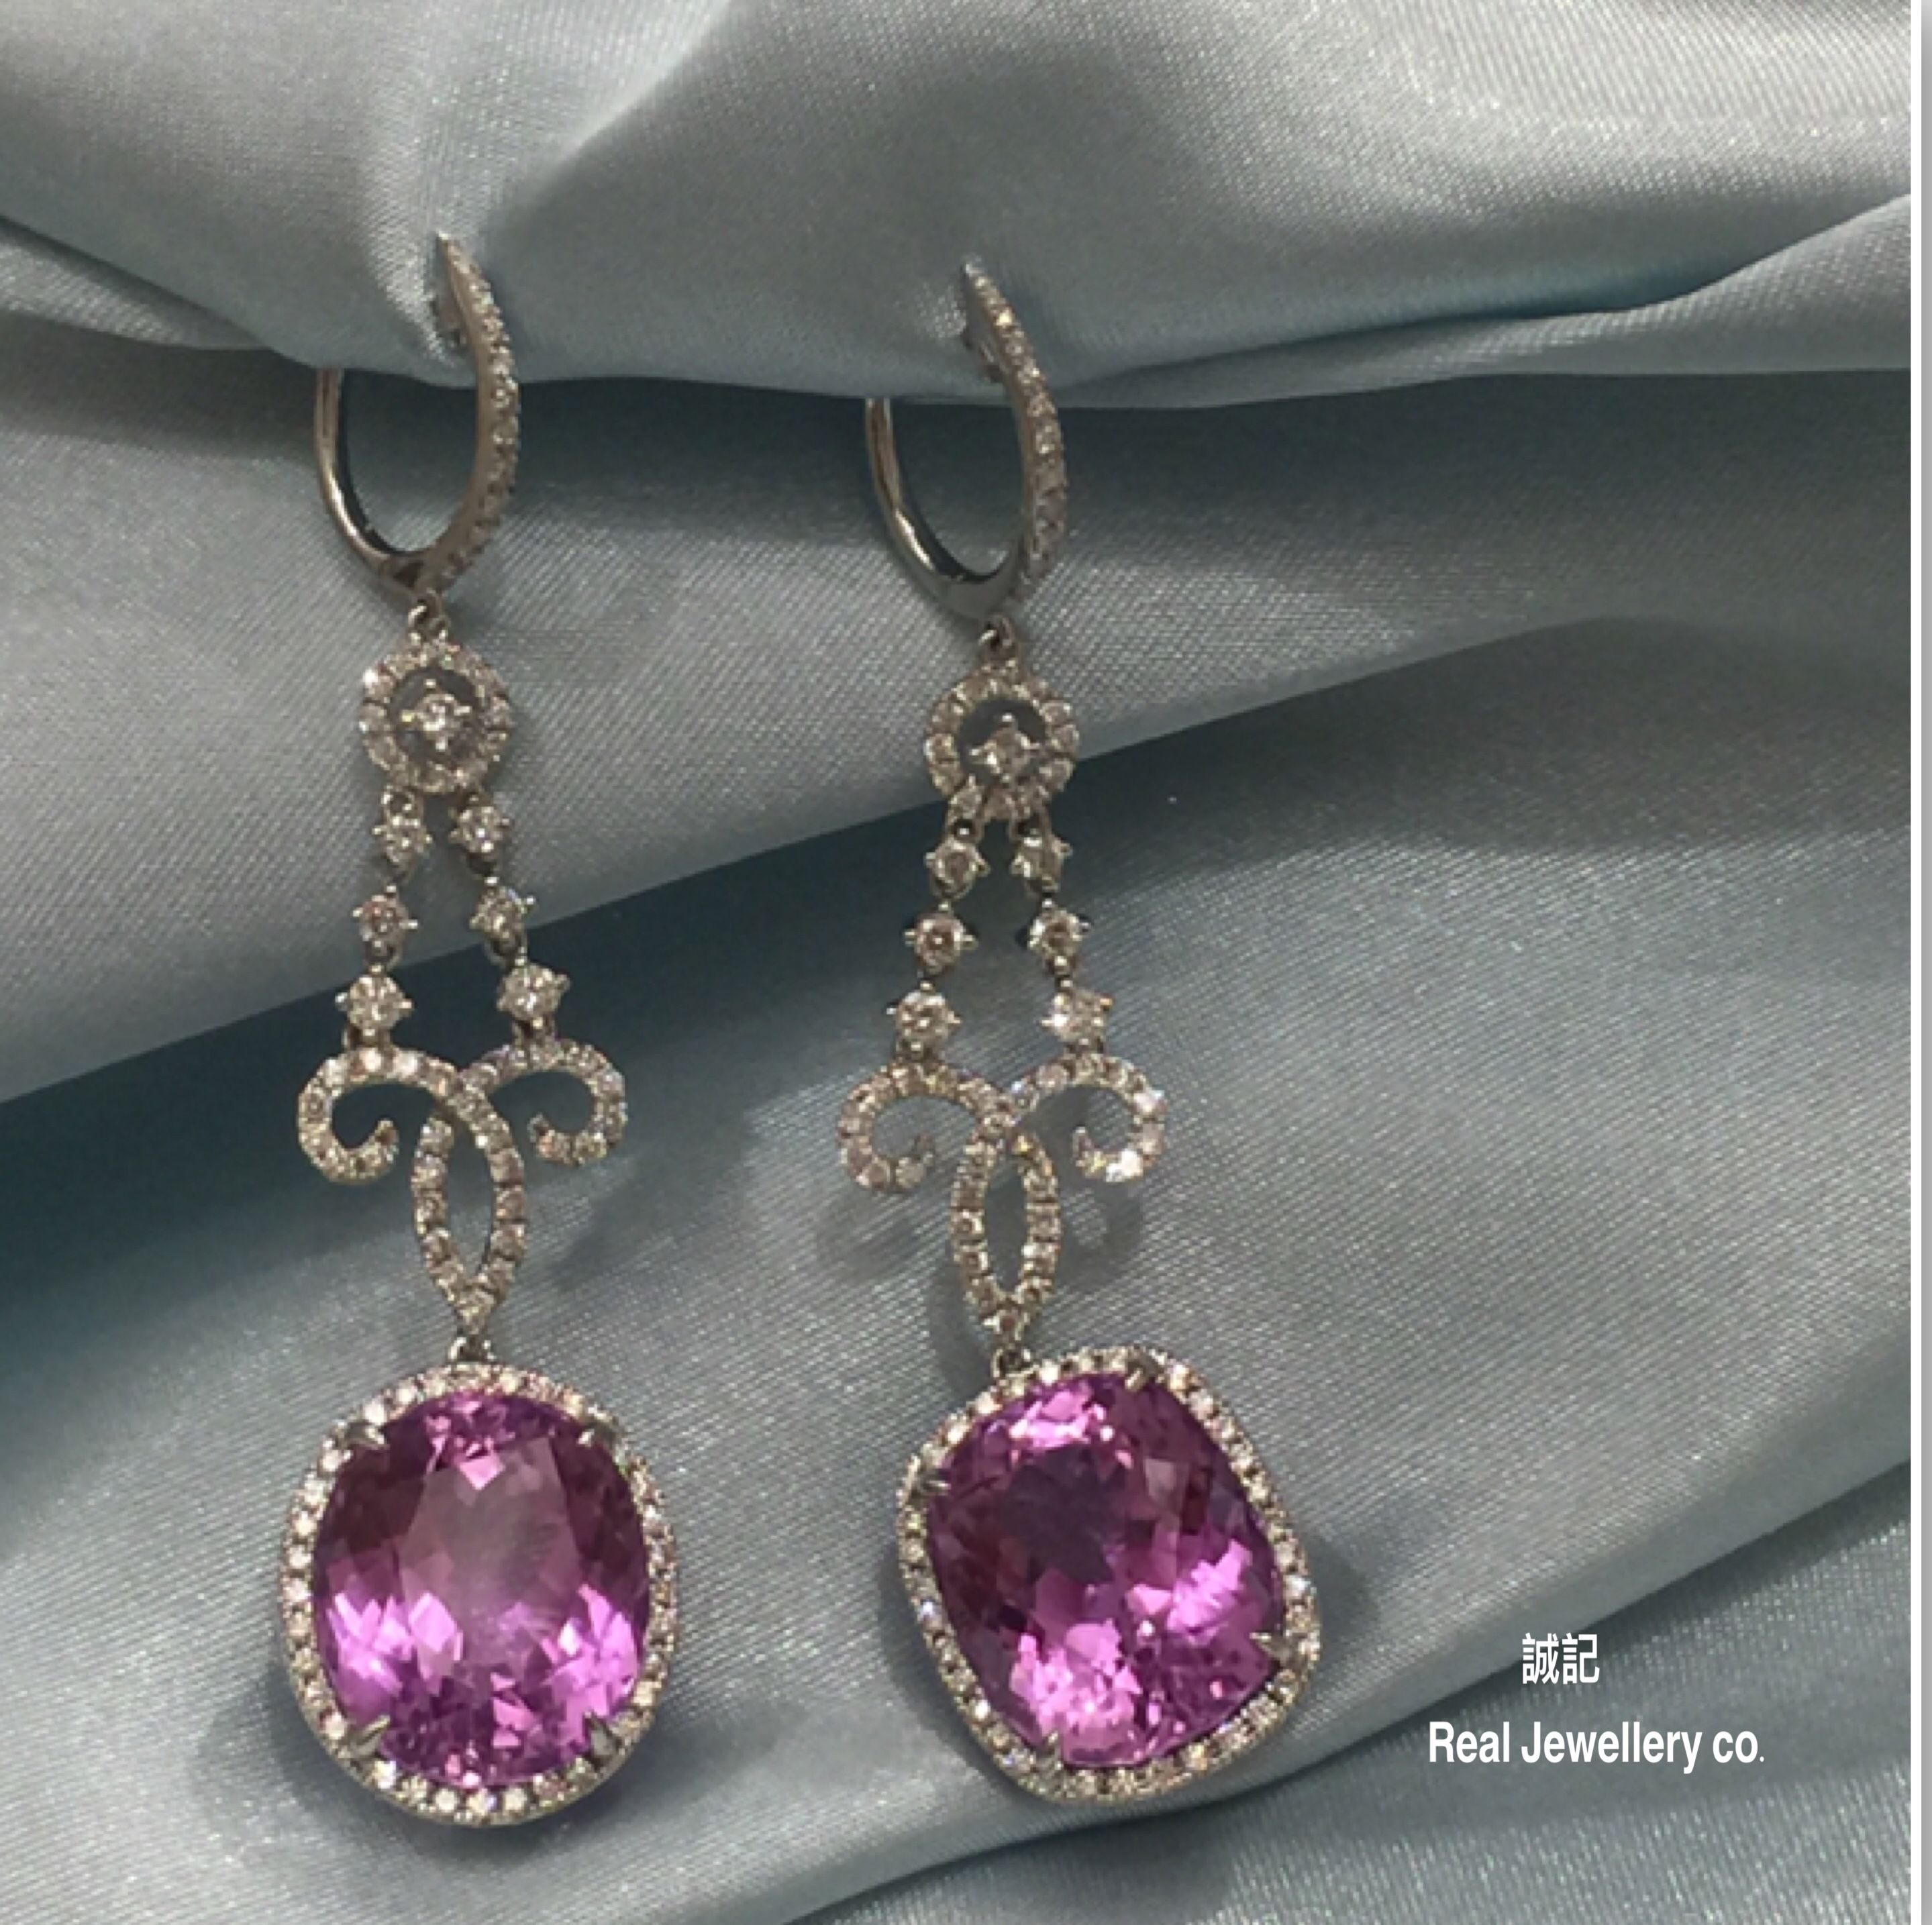 michael jewelry today with overstock sapphire earrings shipping watches light valitutti free pink product kunzite